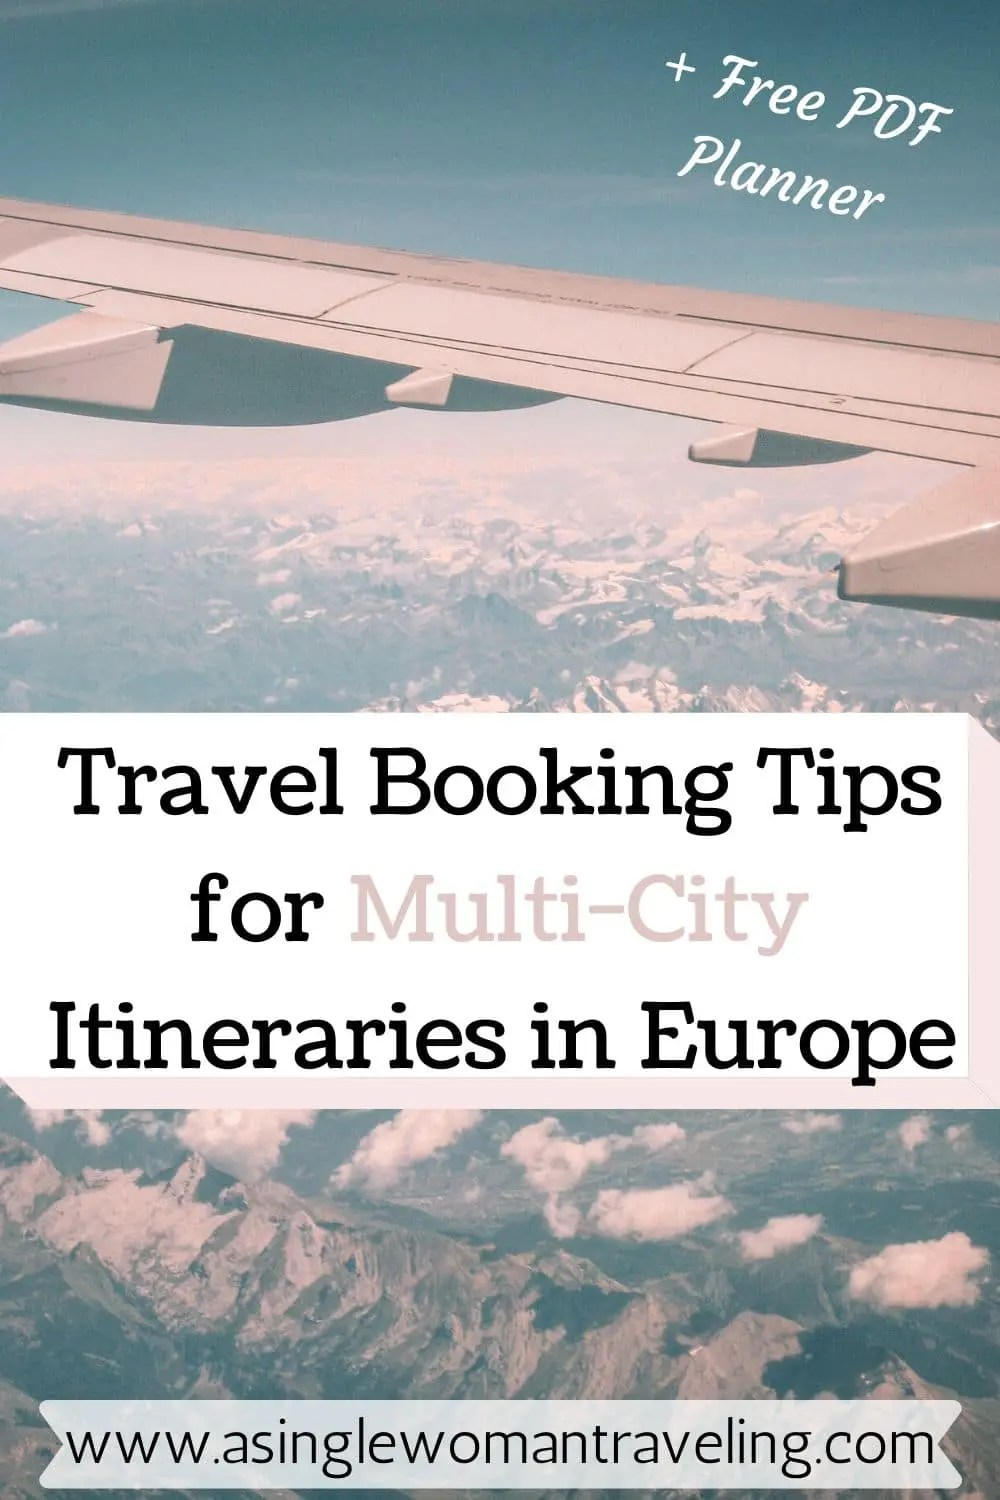 How to Plan A Multi-City Trip to Europe